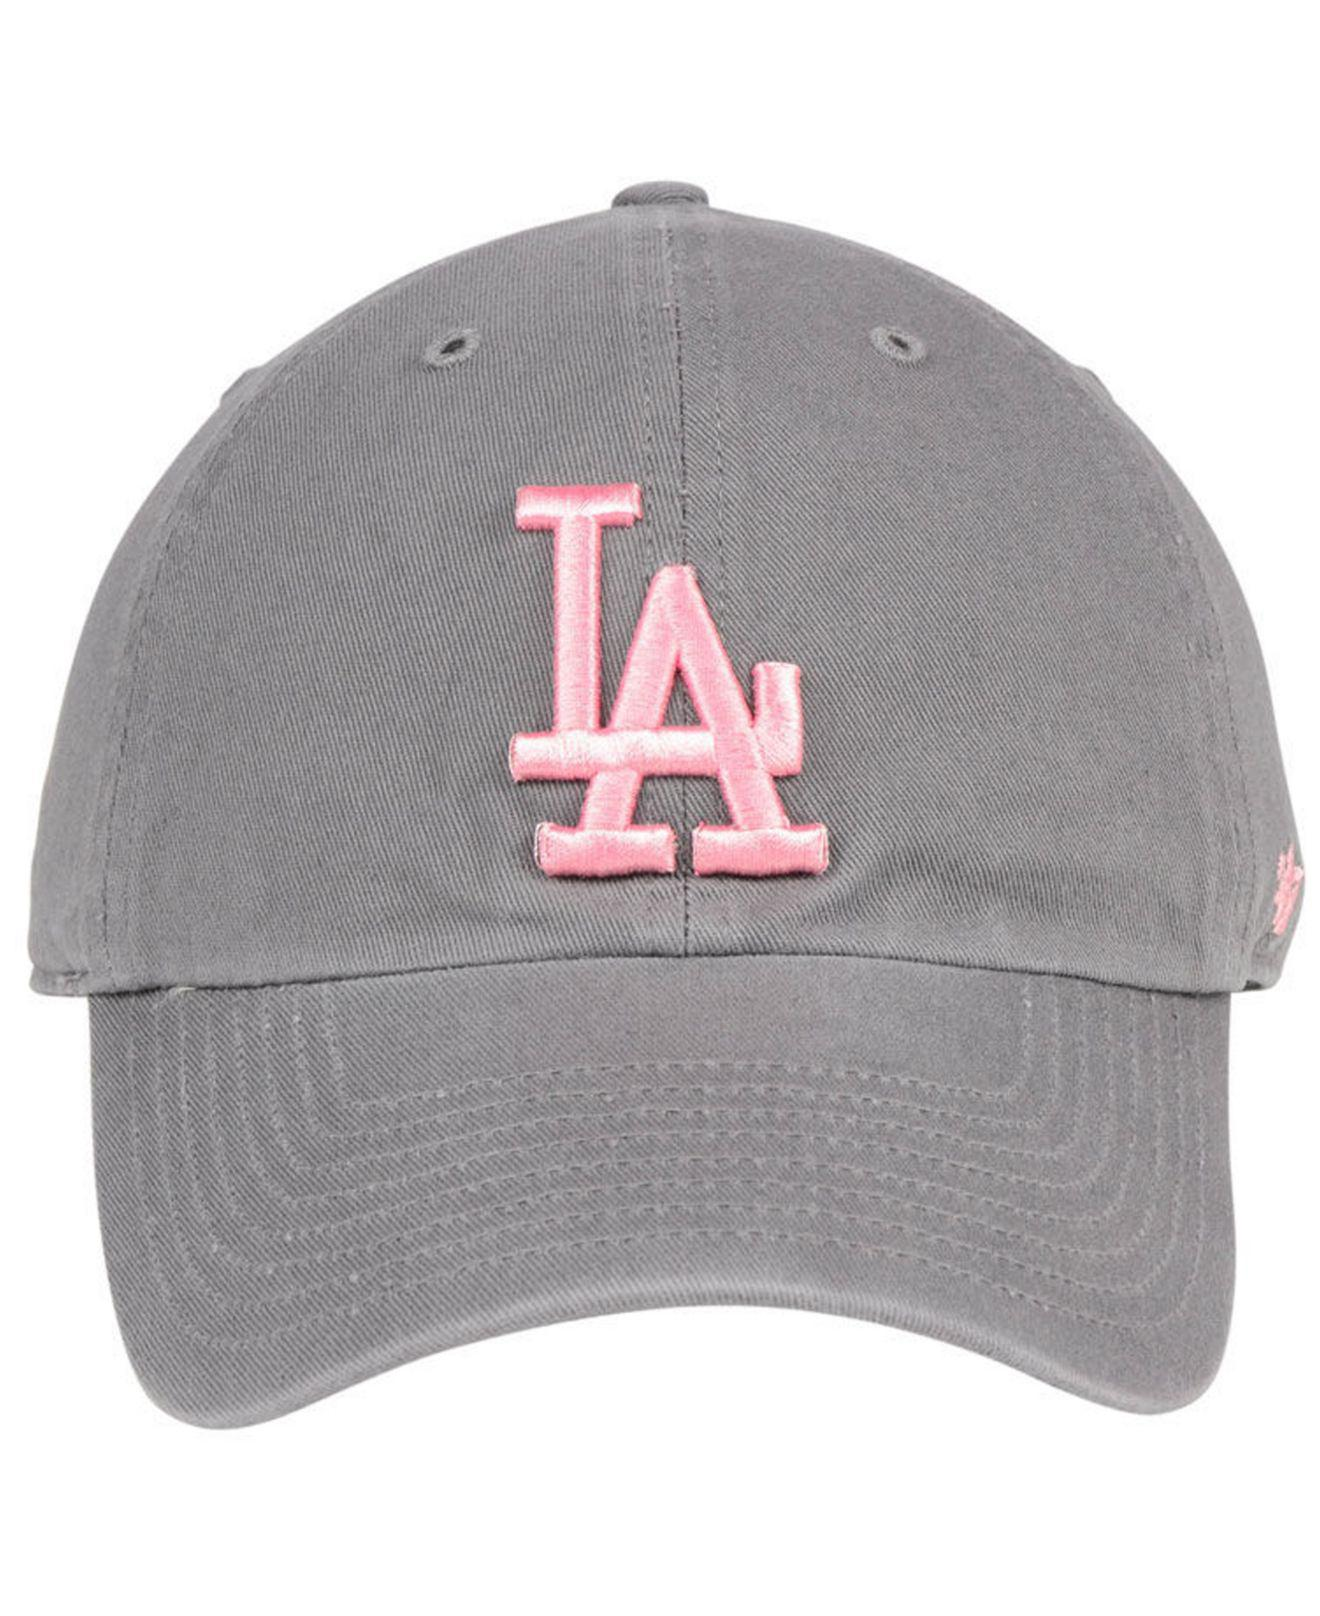 61c3f8c369ec1 ... ebay lyst 47 brand los angeles dodgers dark gray pink clean up cap in  gray 4cc8a